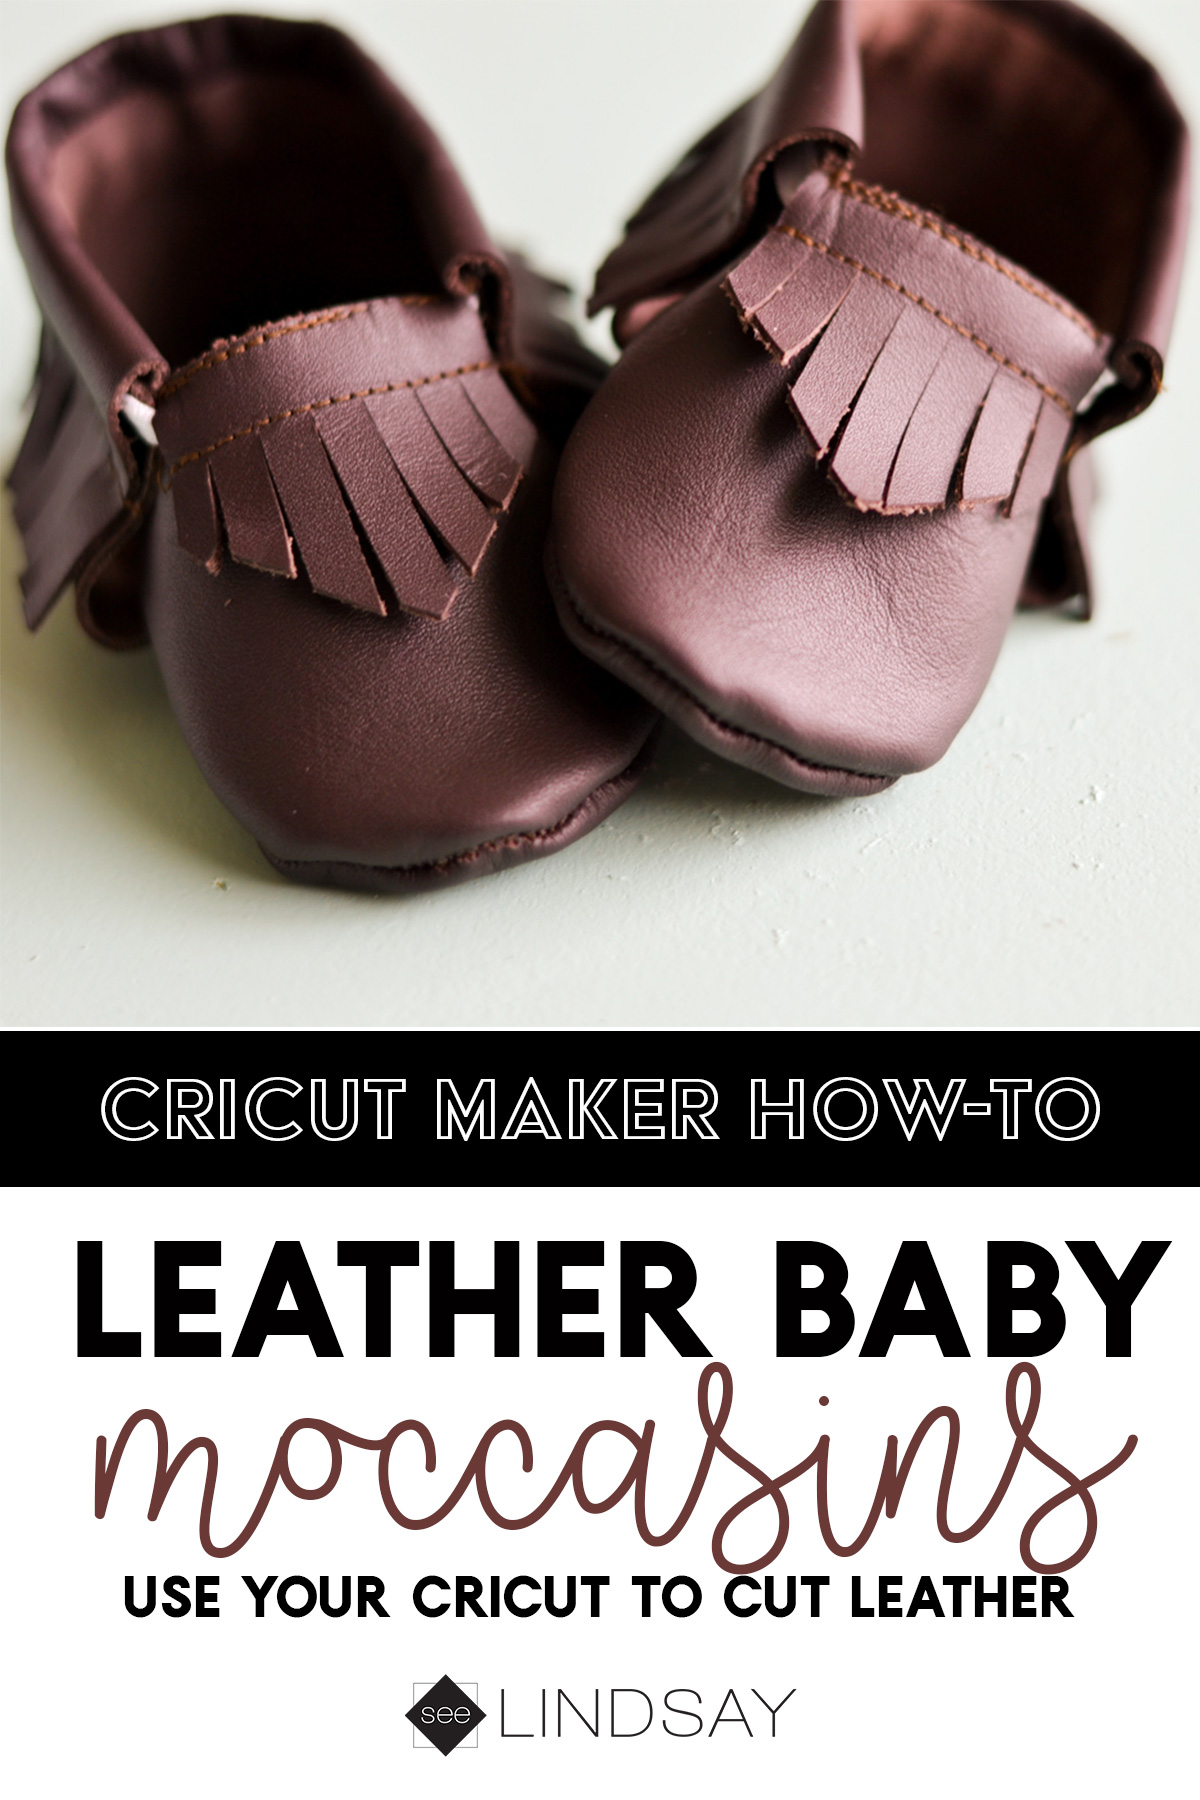 Learn how to cut leather using your Cricut. Use your Cricut Maker to make these adorable leather baby shoes using a leather moccasin pattern available in Cricut Design Space. Learn how to make the baby shoes for a fraction of the cost. #cricutleather #cricut #cricutmade #leathermoccasin #babyshoepattern #moccasins #babyshoes